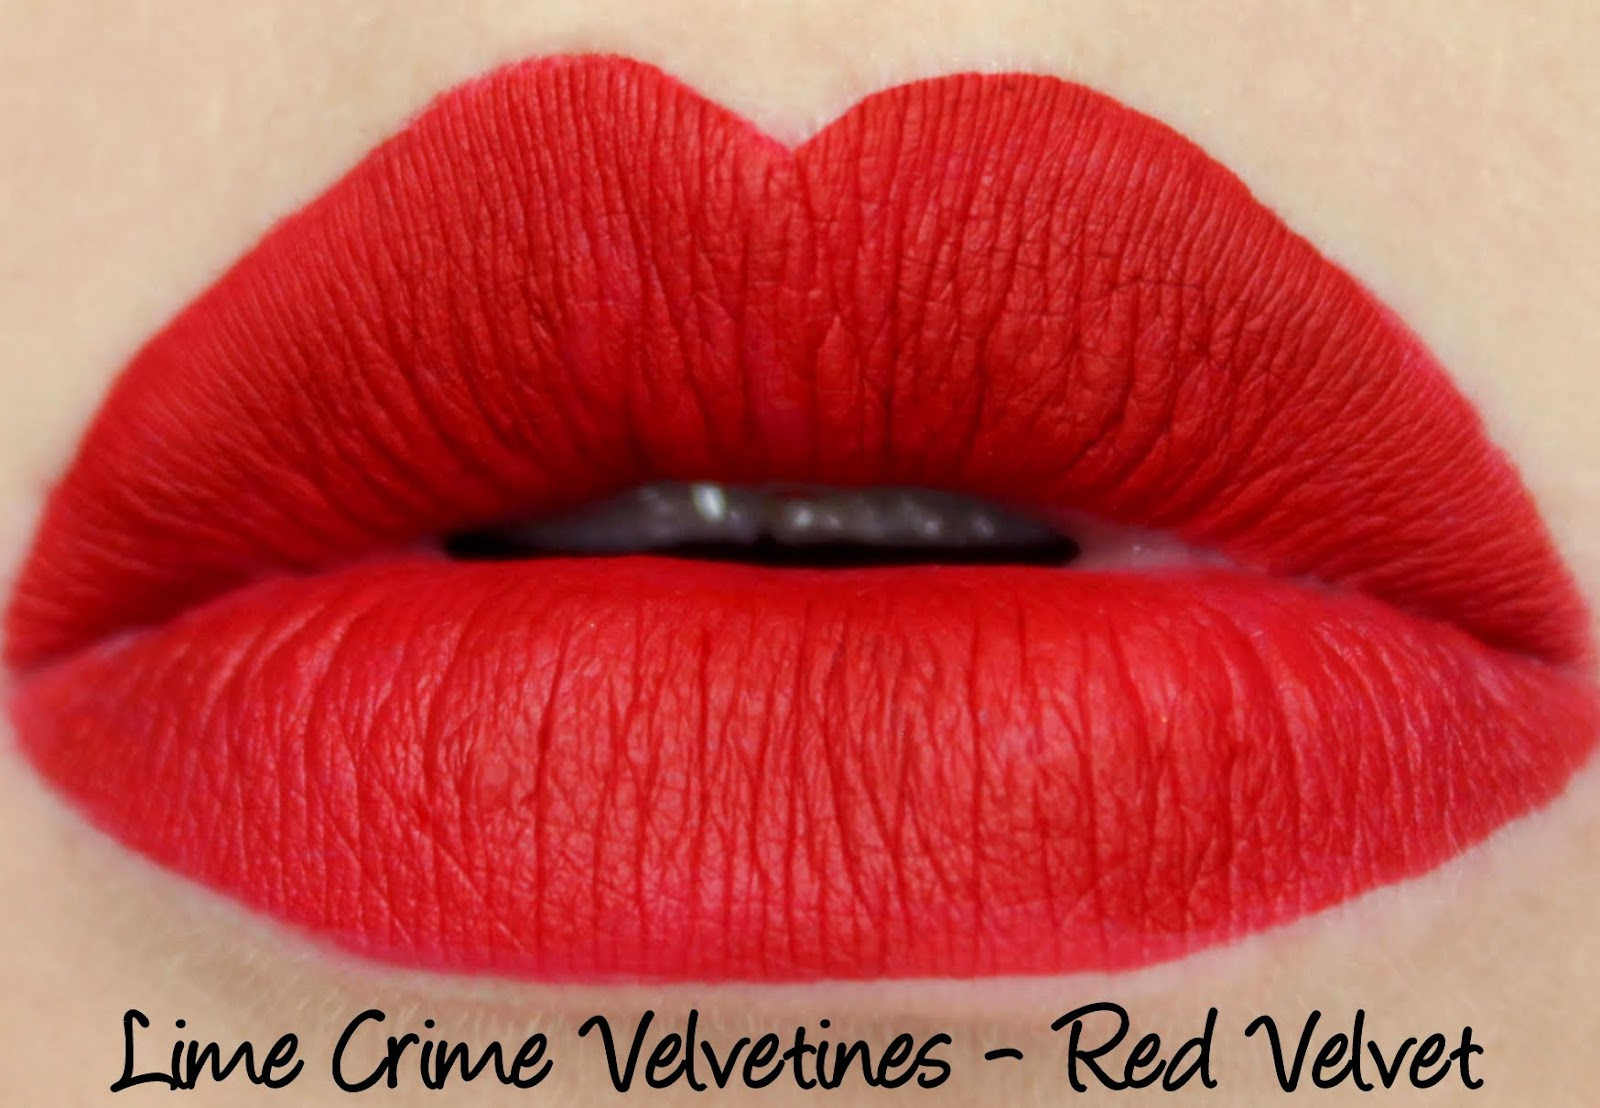 Lime Crime Velvetines Red Velvet lipstick swatch